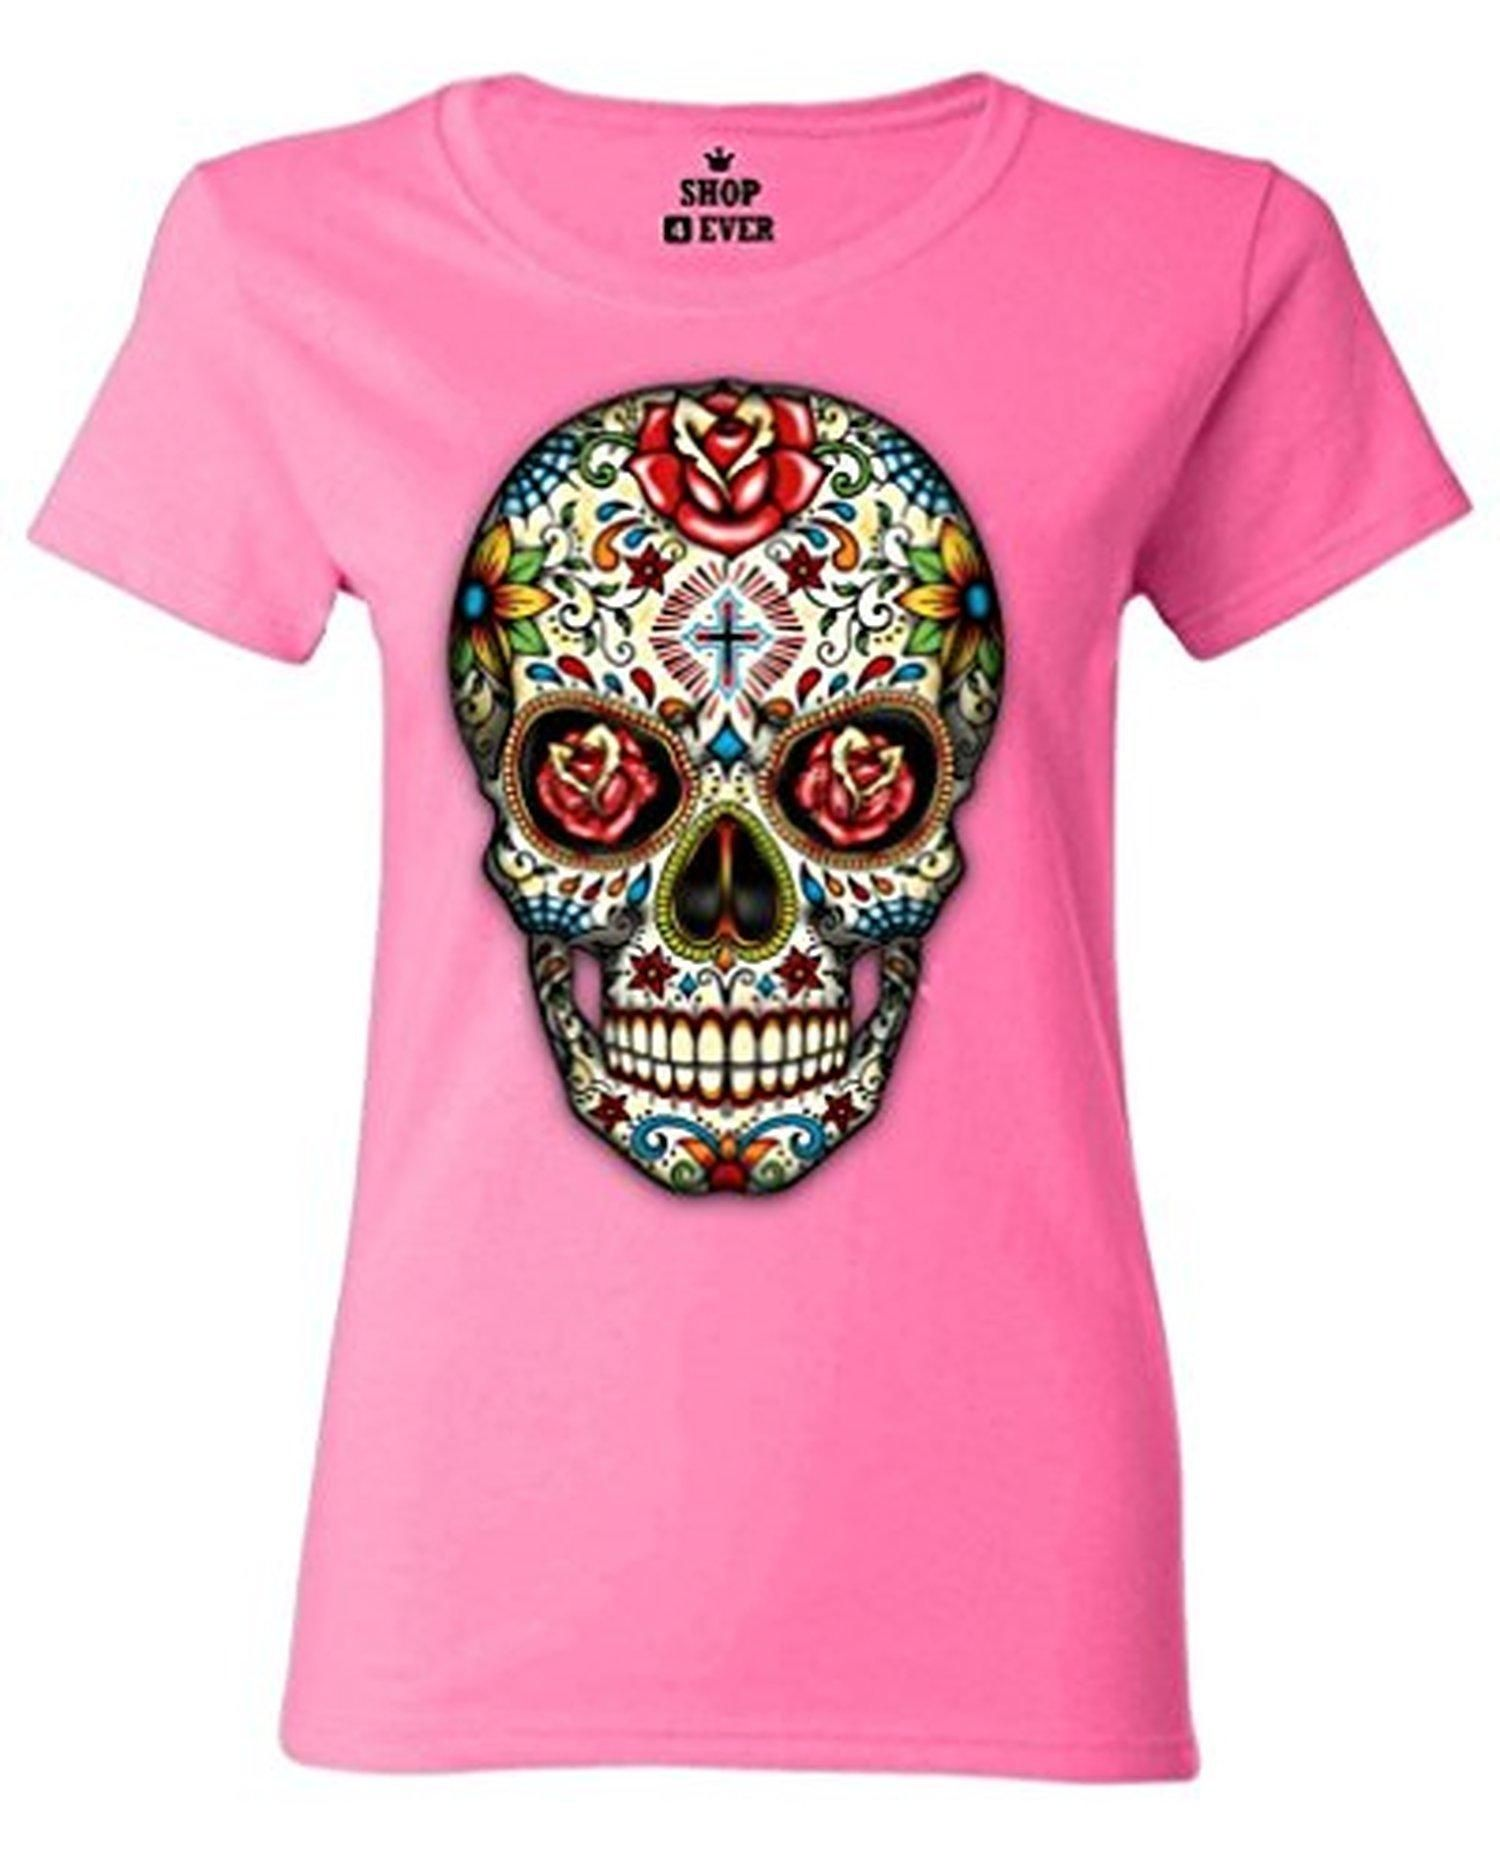 Sugar Skull Roses Women T Shirt Day of Dead Shirts #16553 Large Azalea Pink - Brought to you by Avarsha.com